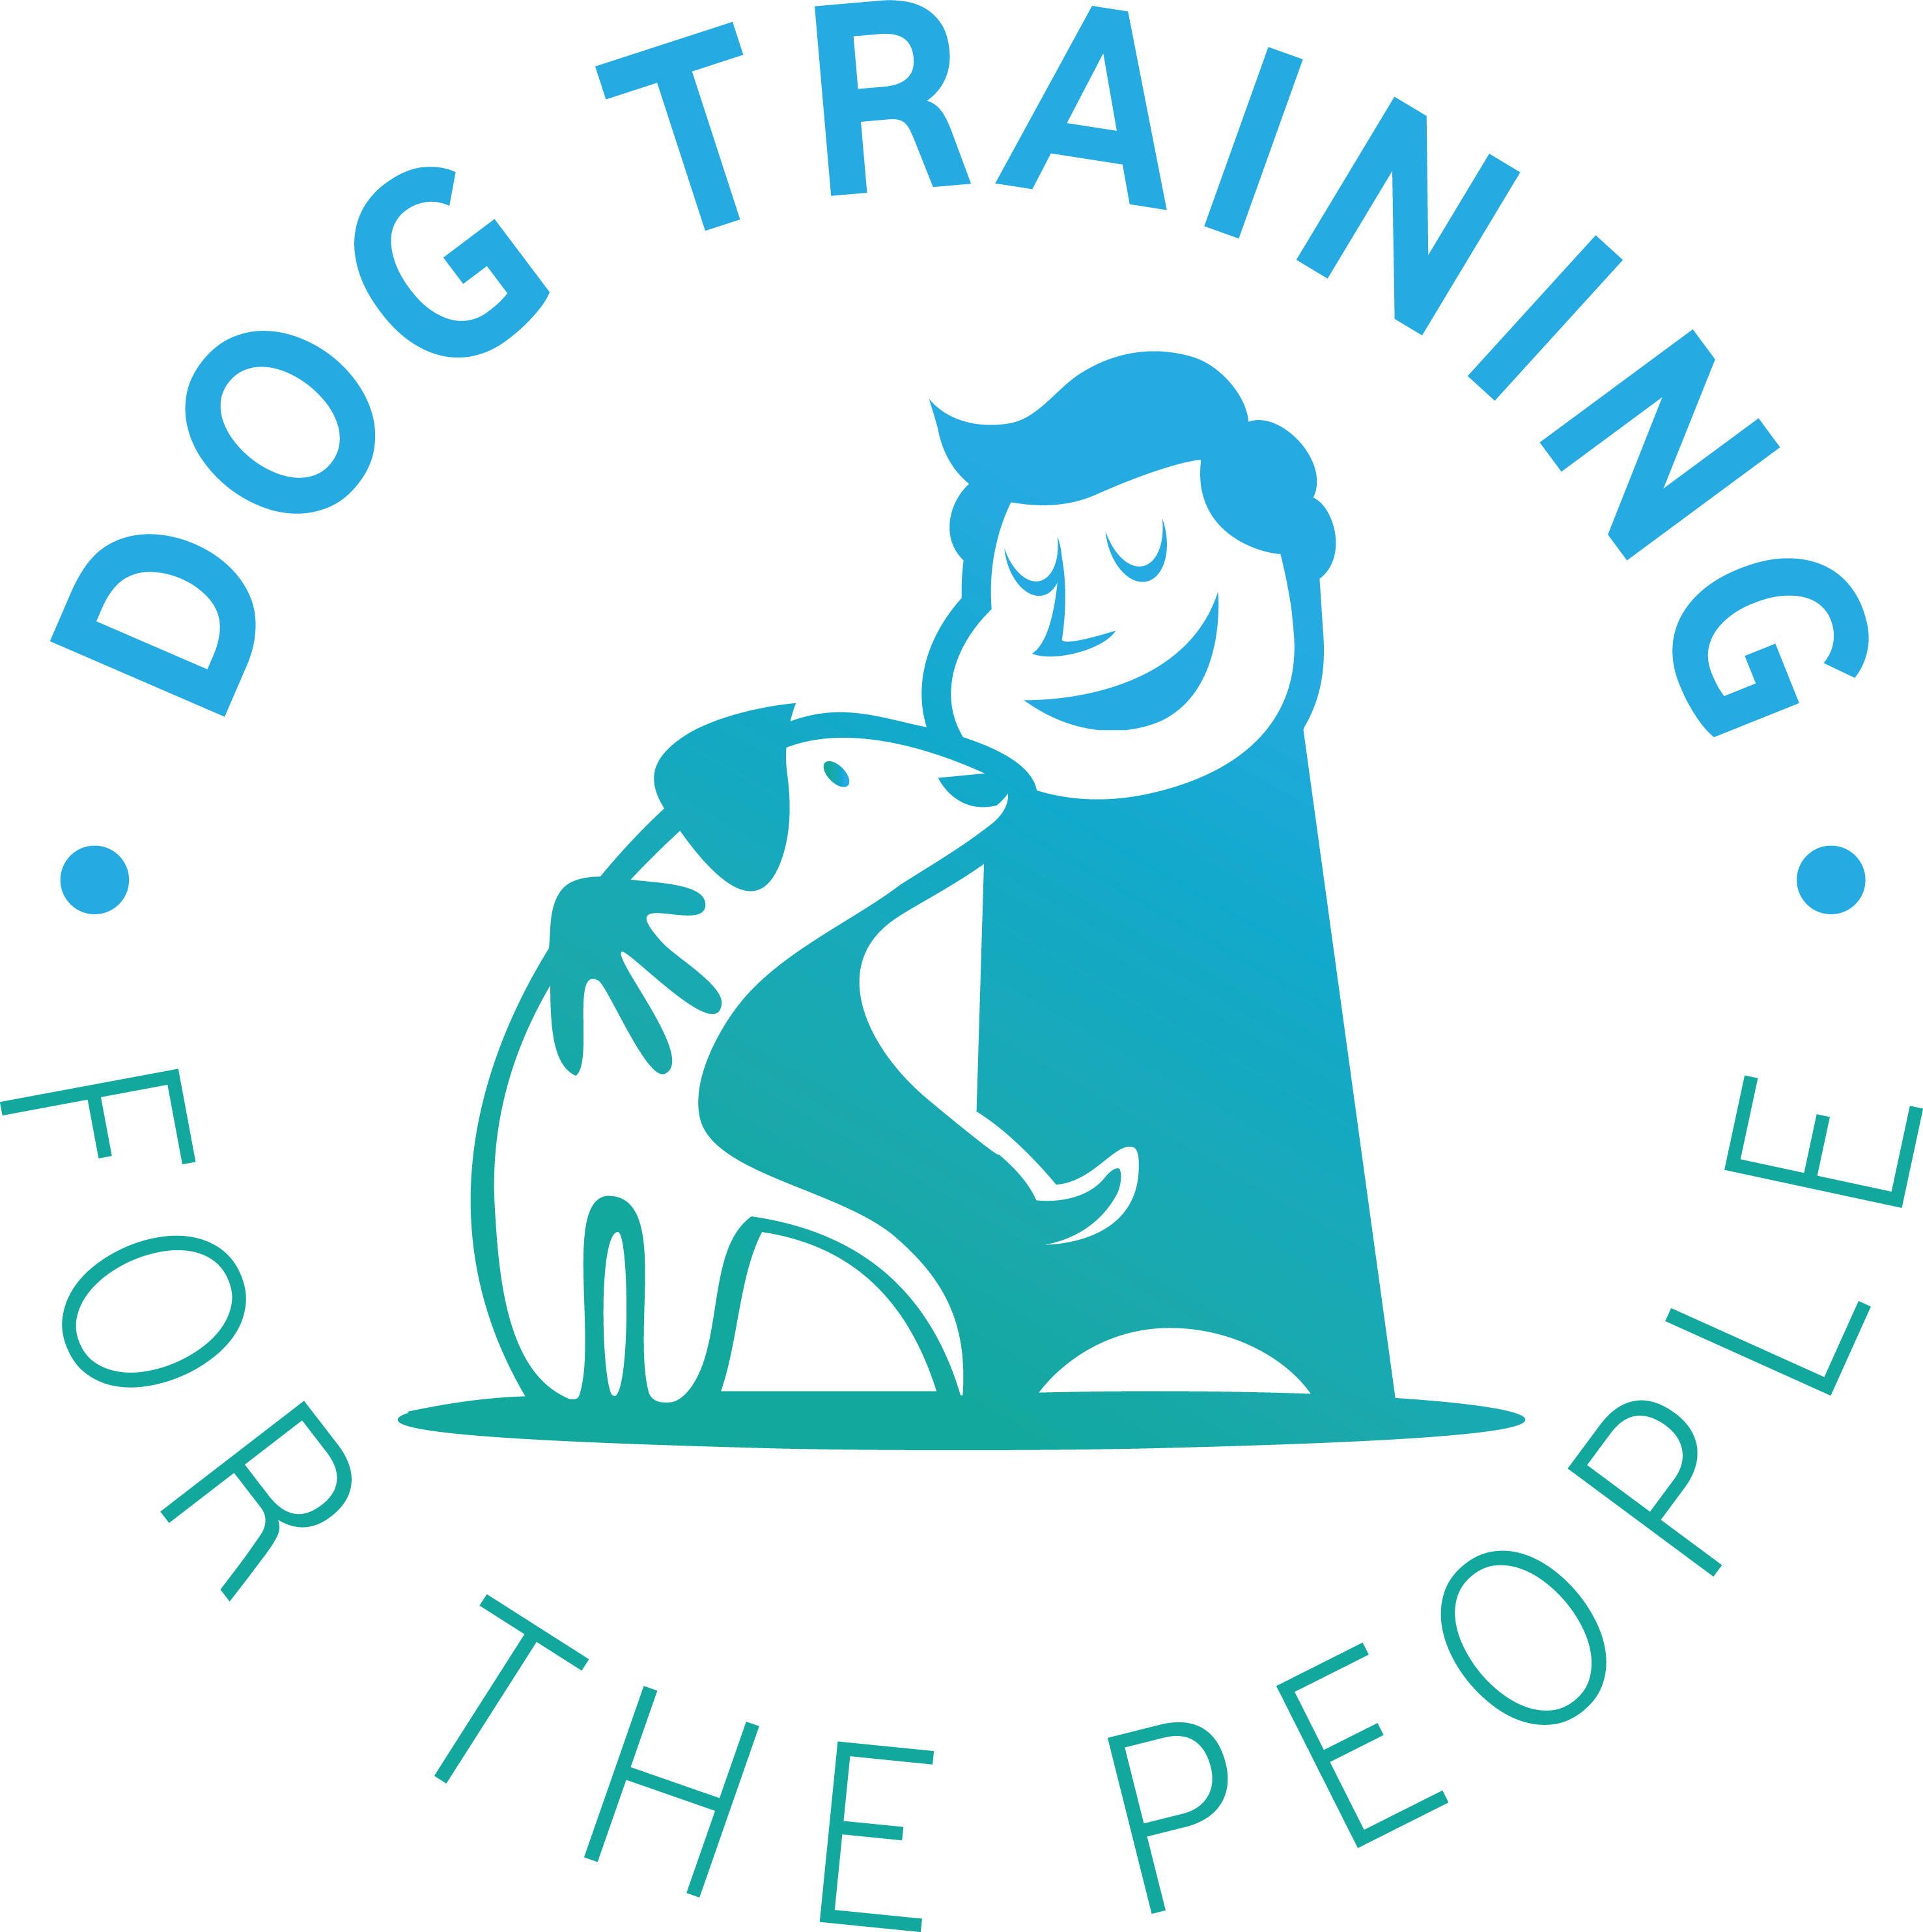 Create an inspirational logo for a free, web-based dog training platform